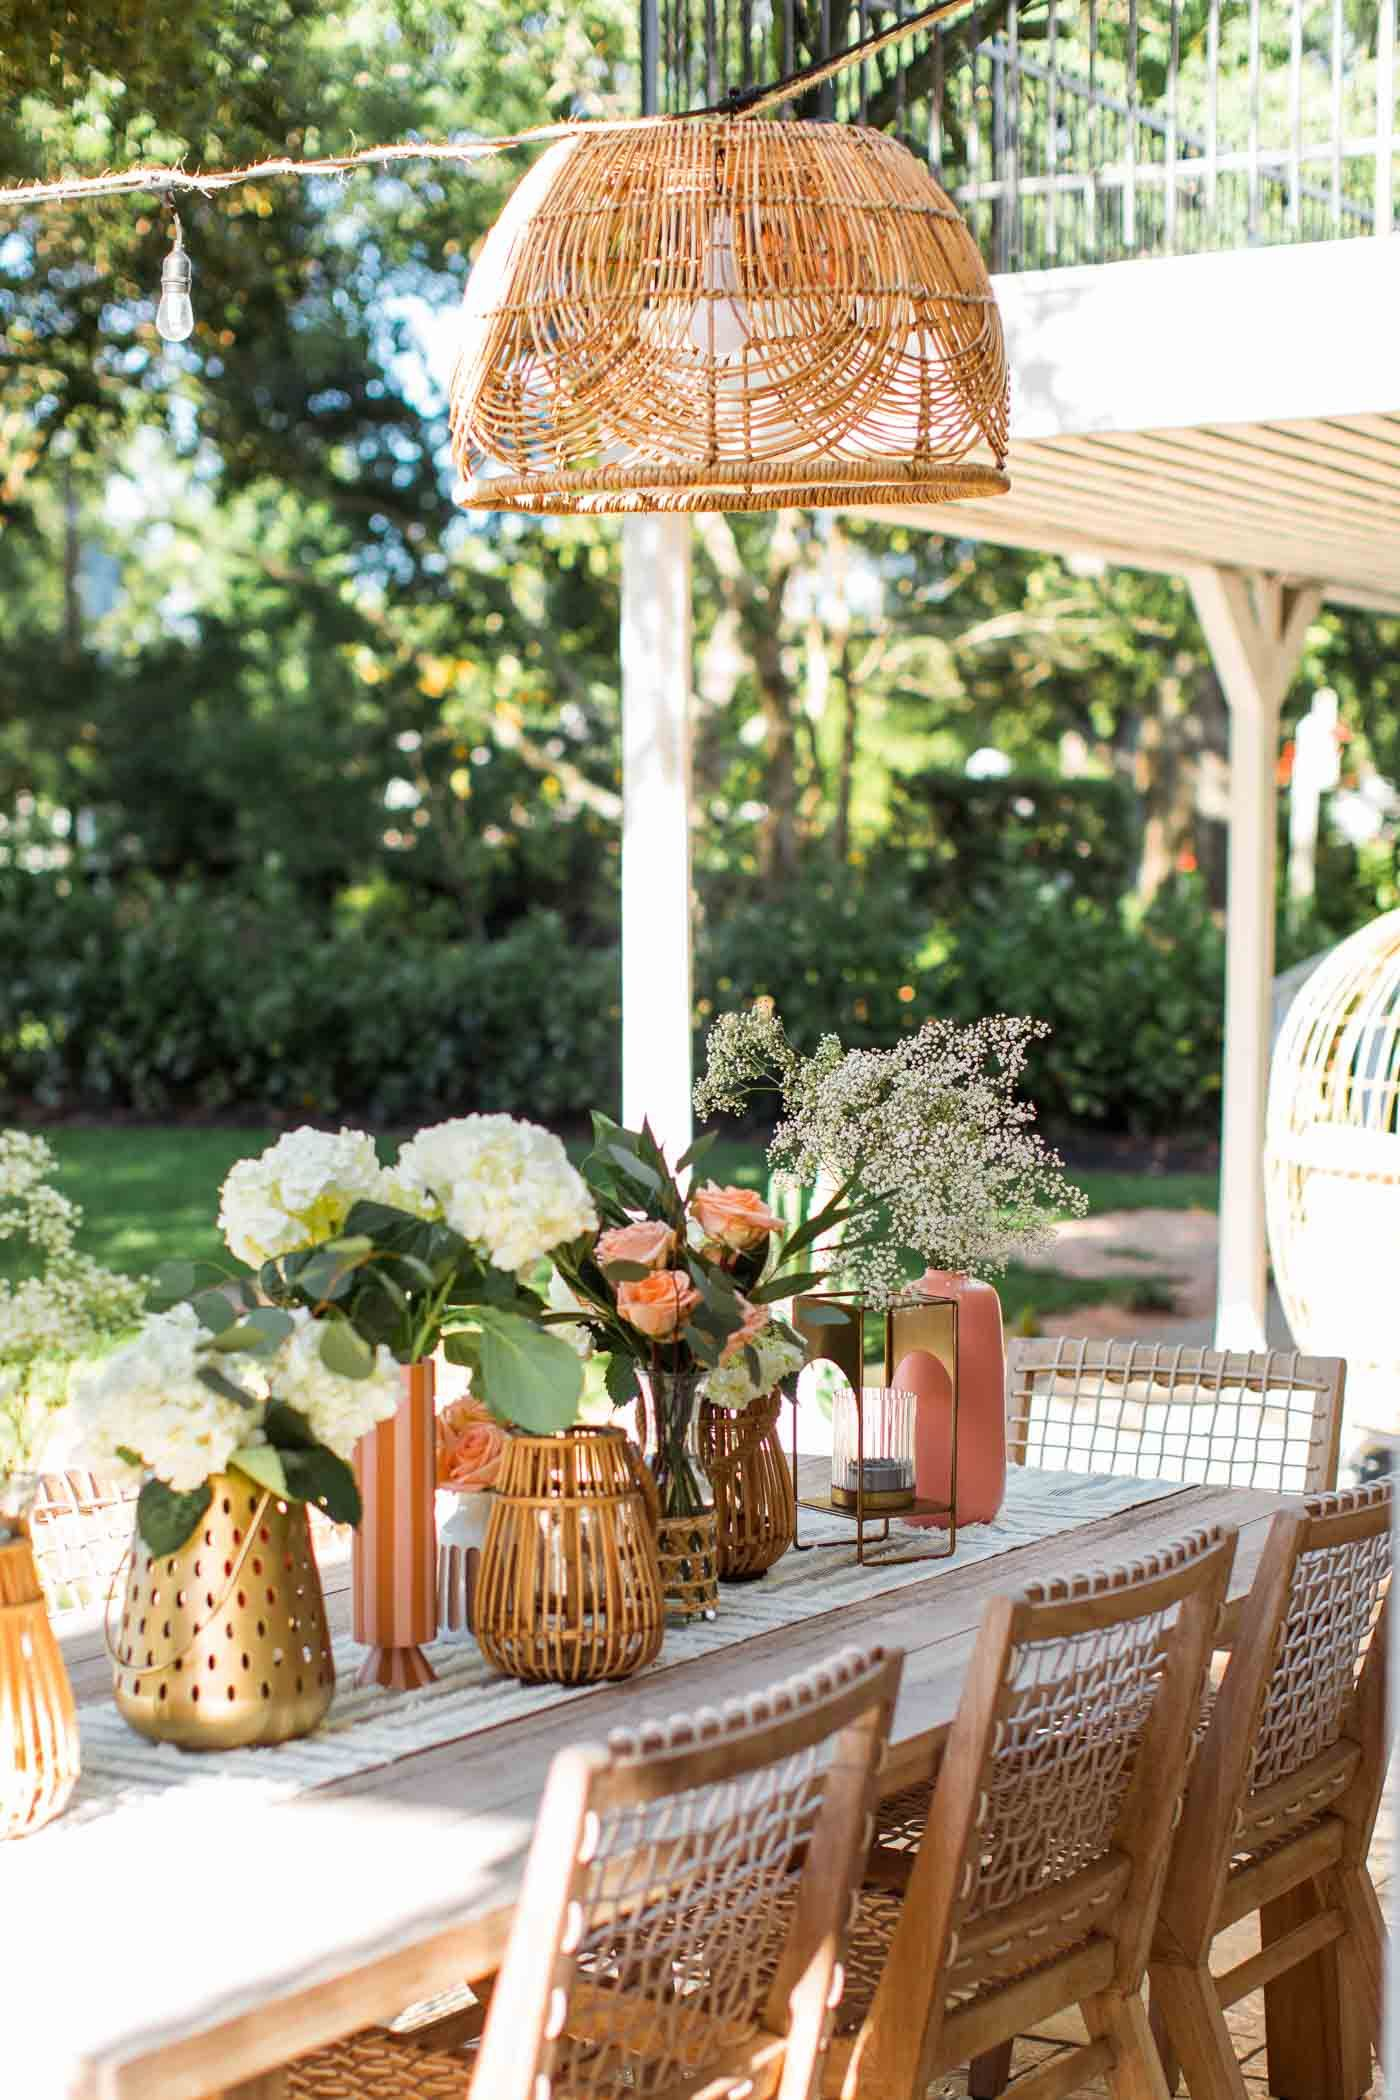 Patio Lighting Idea How To Make A Battery Operated Outdoor Light Battery Operated Lights Outdoor Patio Lighting Gazebo Lighting